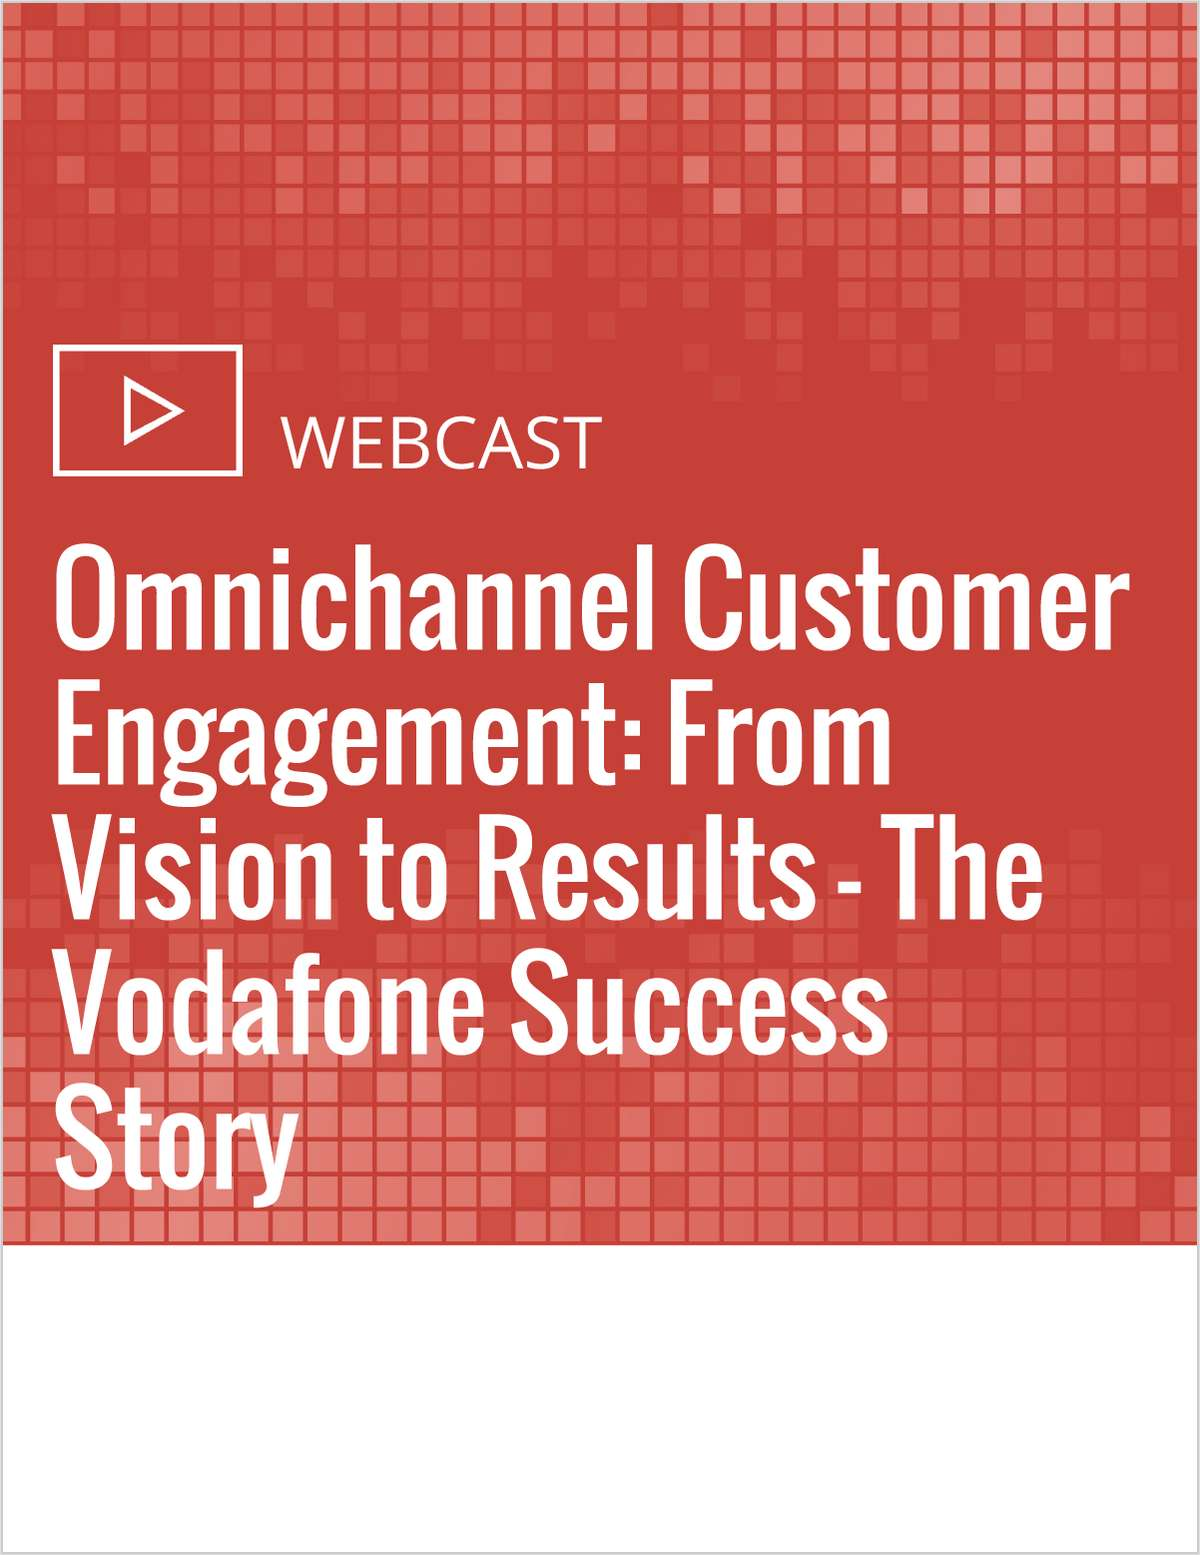 Omnichannel Customer Engagement: From Vision to Results - The Vodafone Success Story